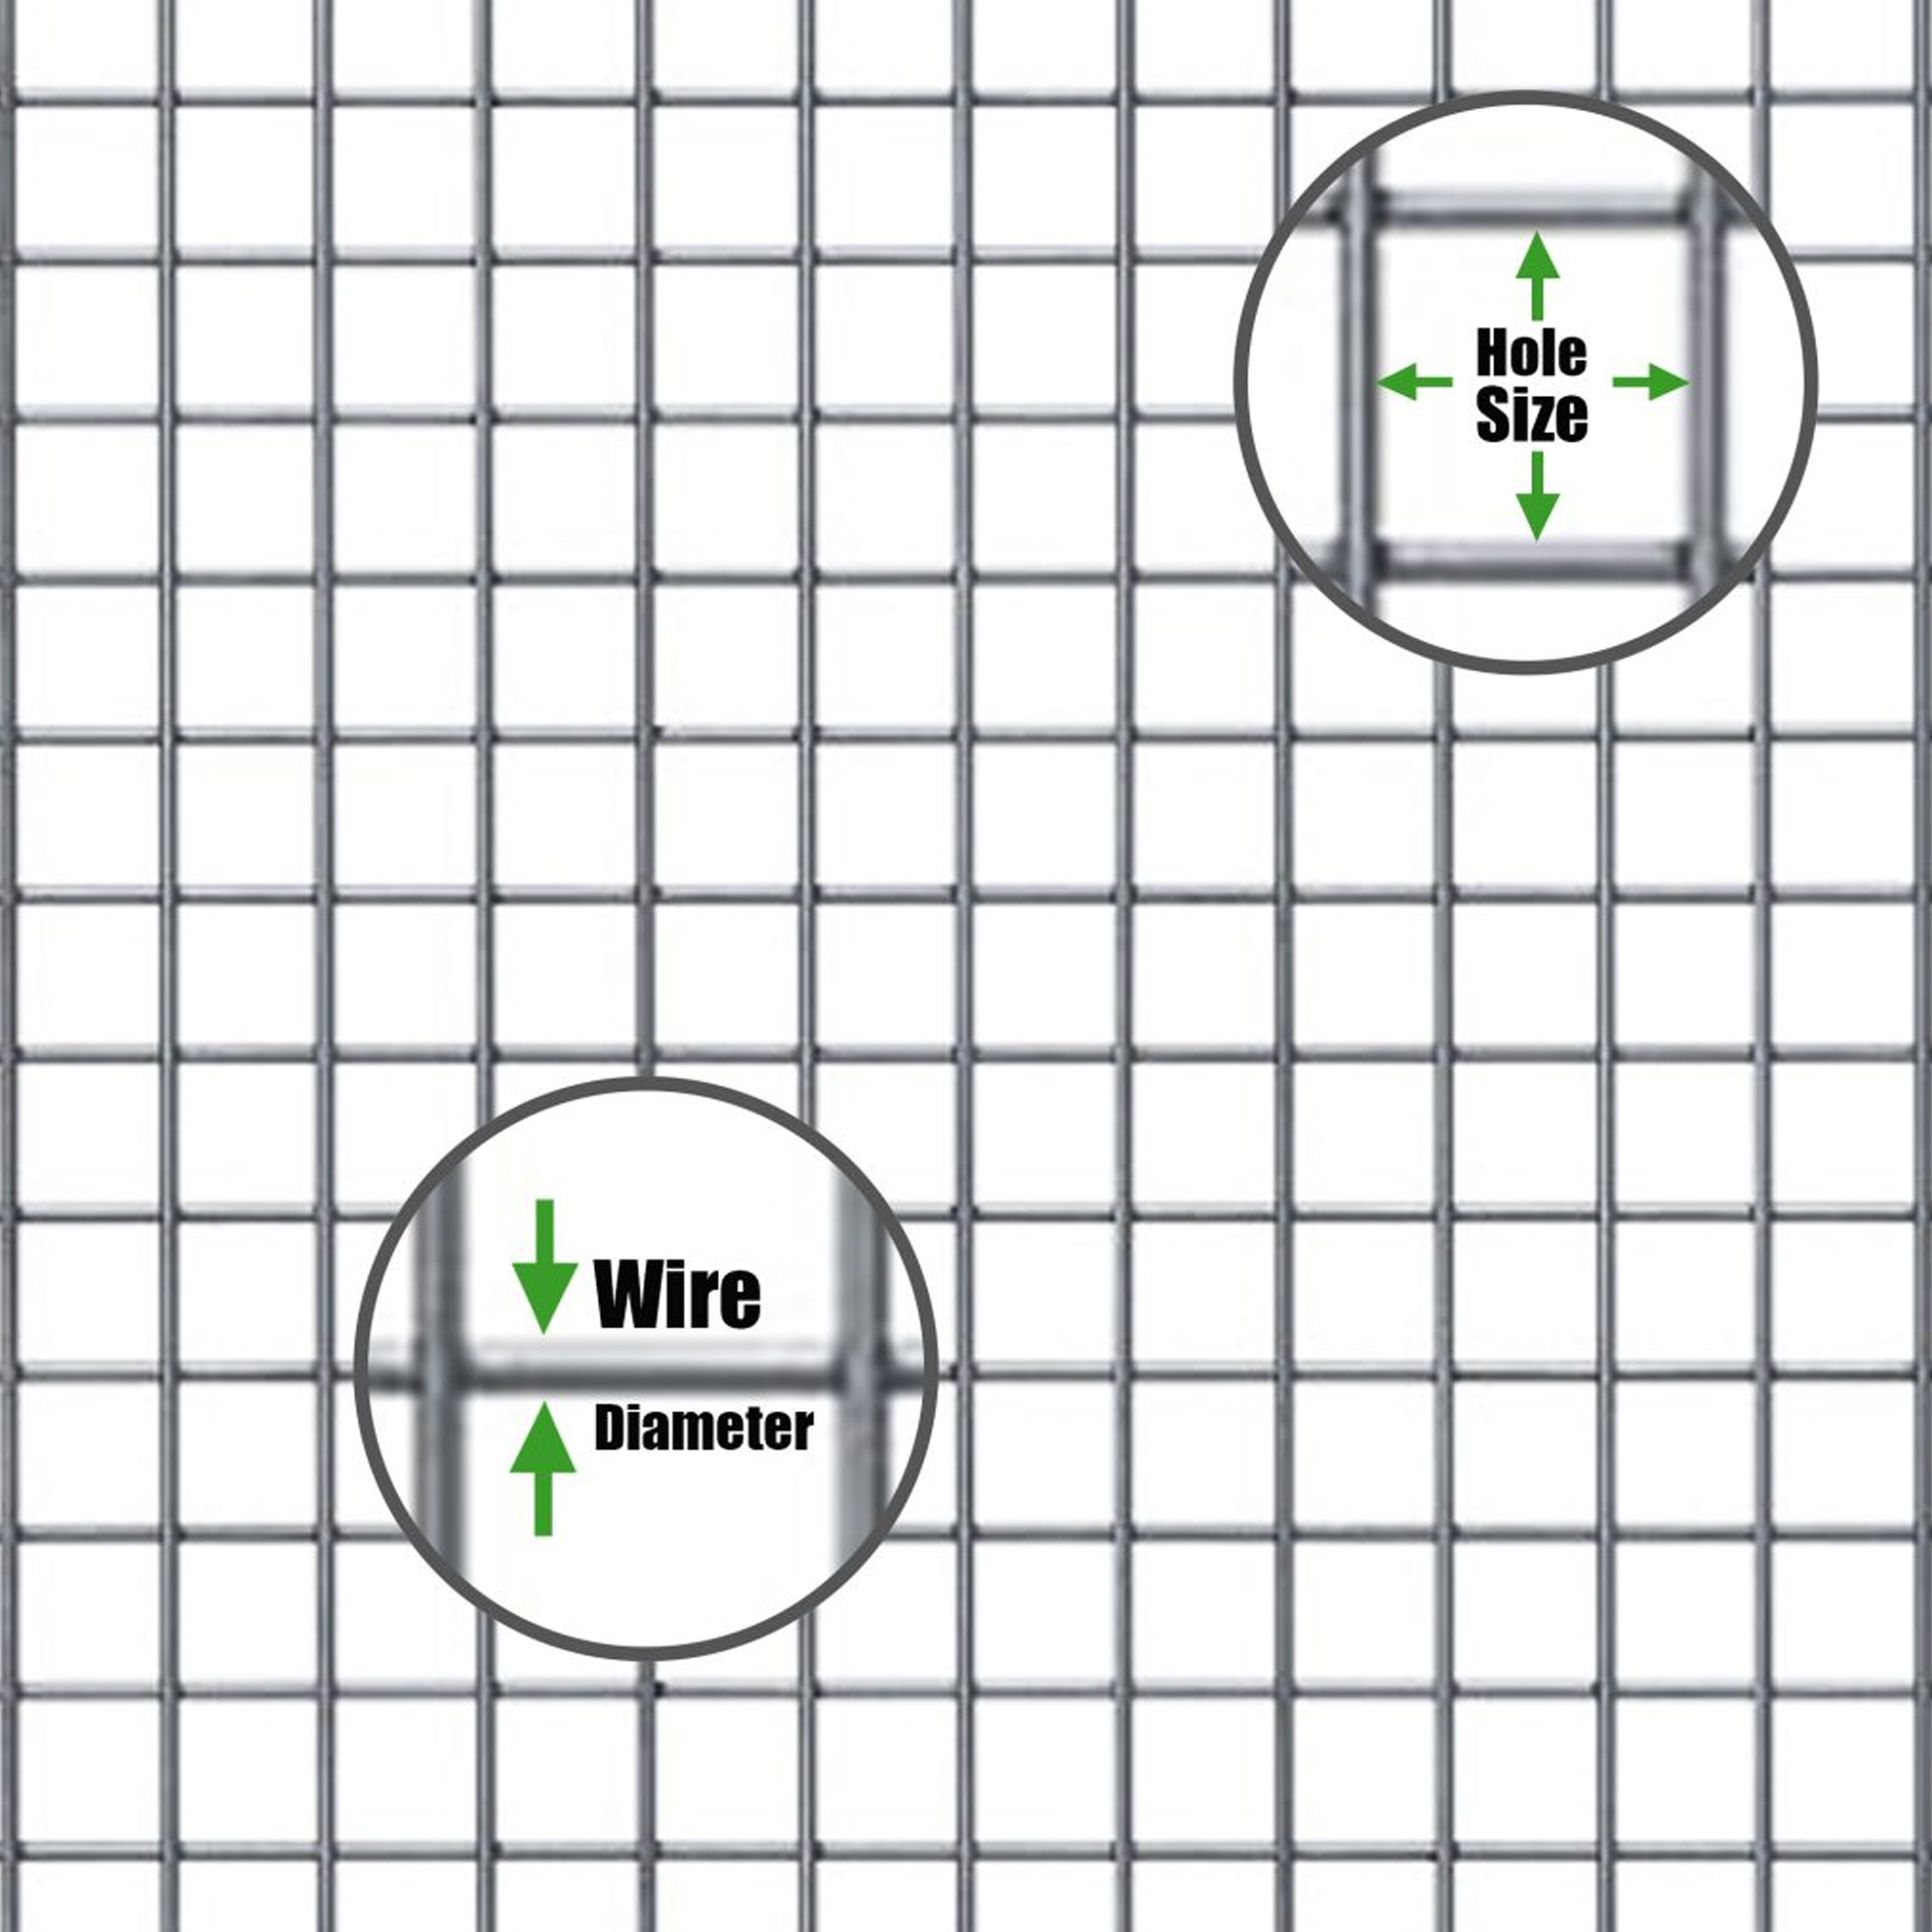 wire-mesh-panel-diameter-hole-size-diagram